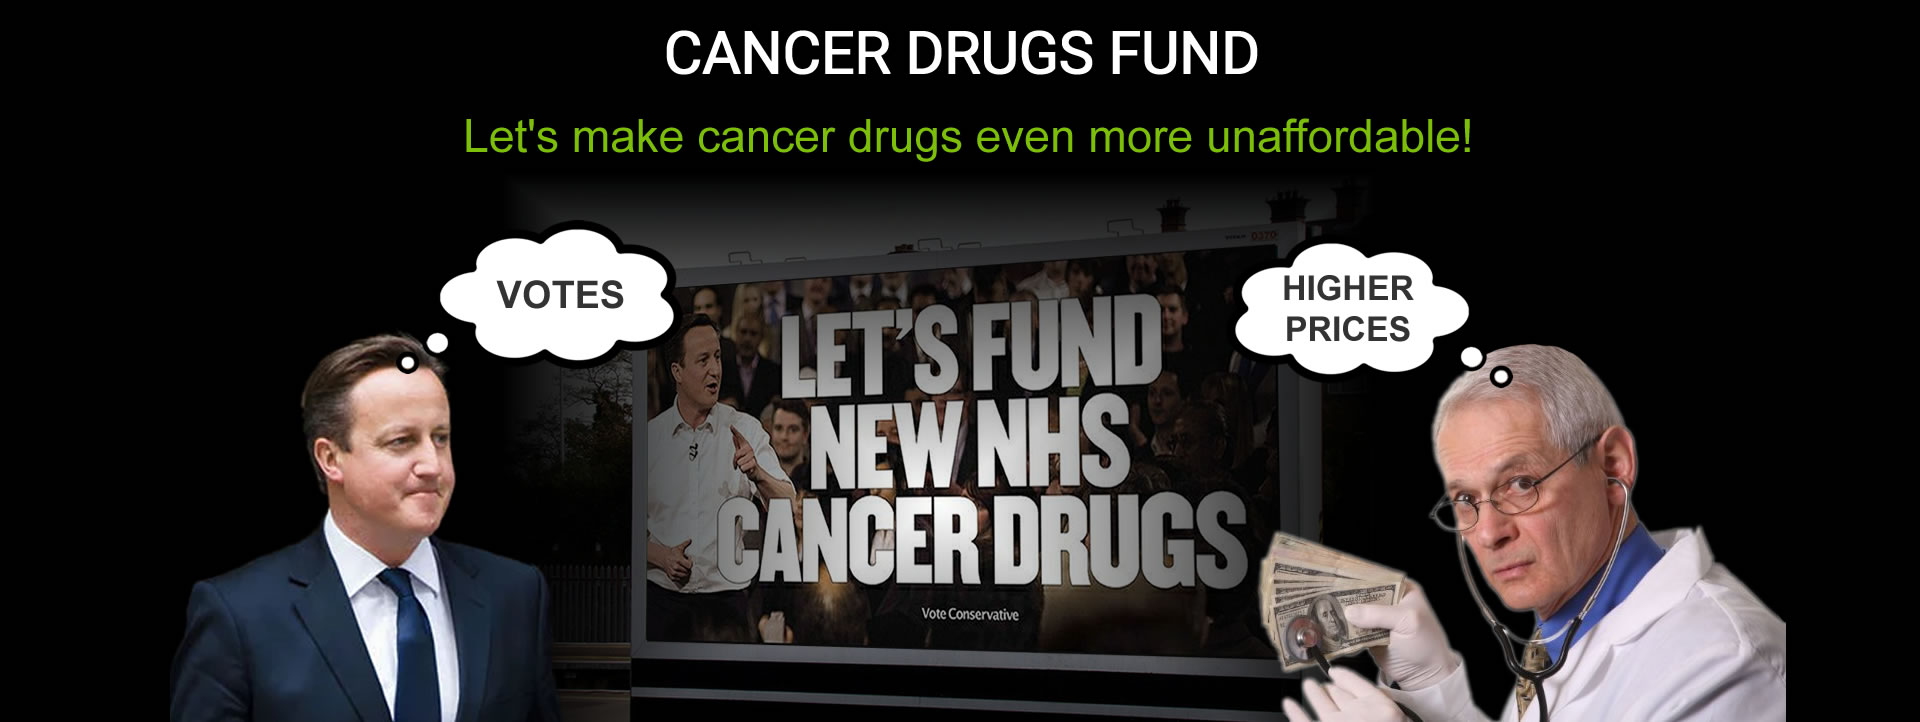 Cancer Drugs Fund Fuels Price Rises